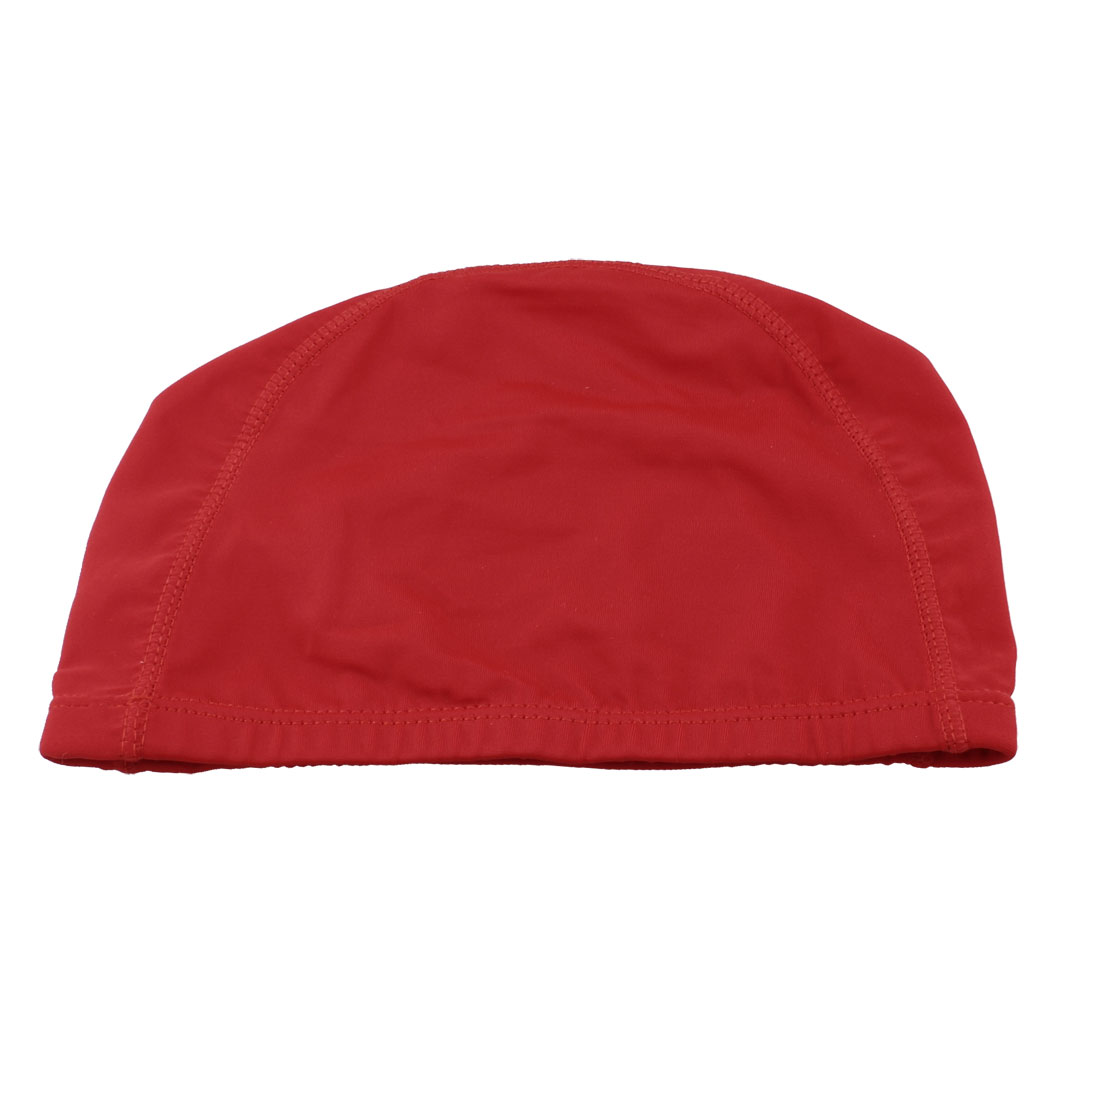 Adults Red Polyester Elastic Fiber Surf Surfing Swimming Cap Hat